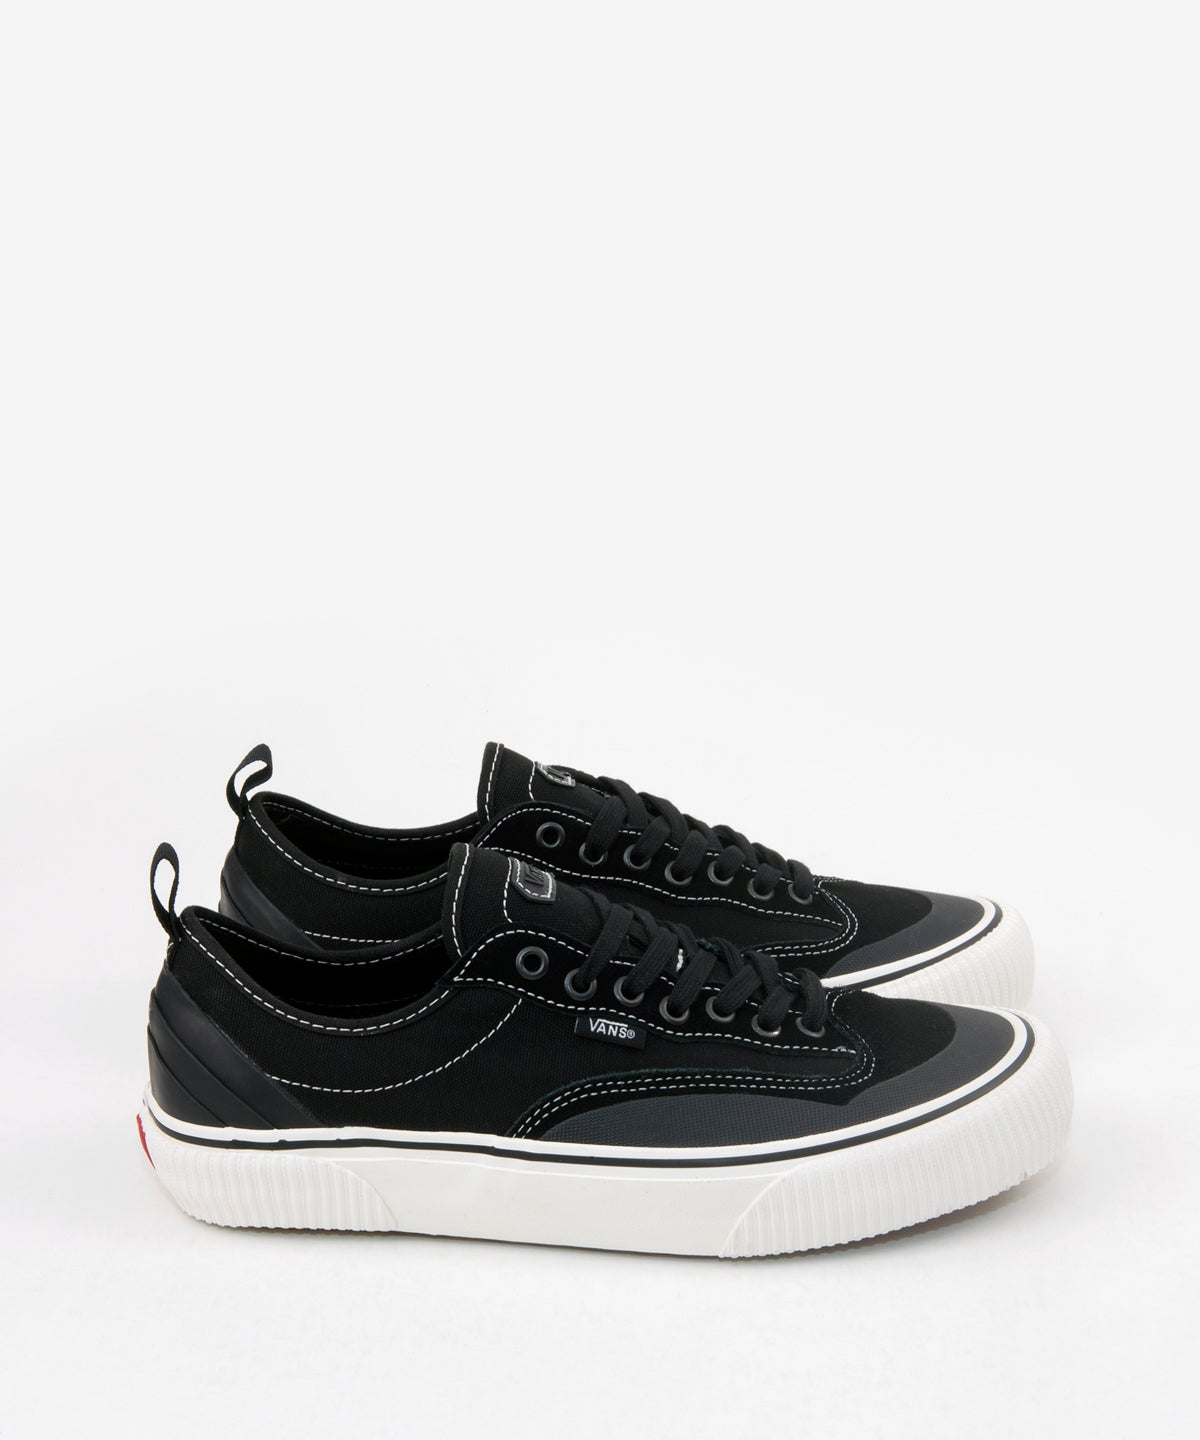 Image of VANS_DESTRUCT SF :::BLACK/WHITE:::